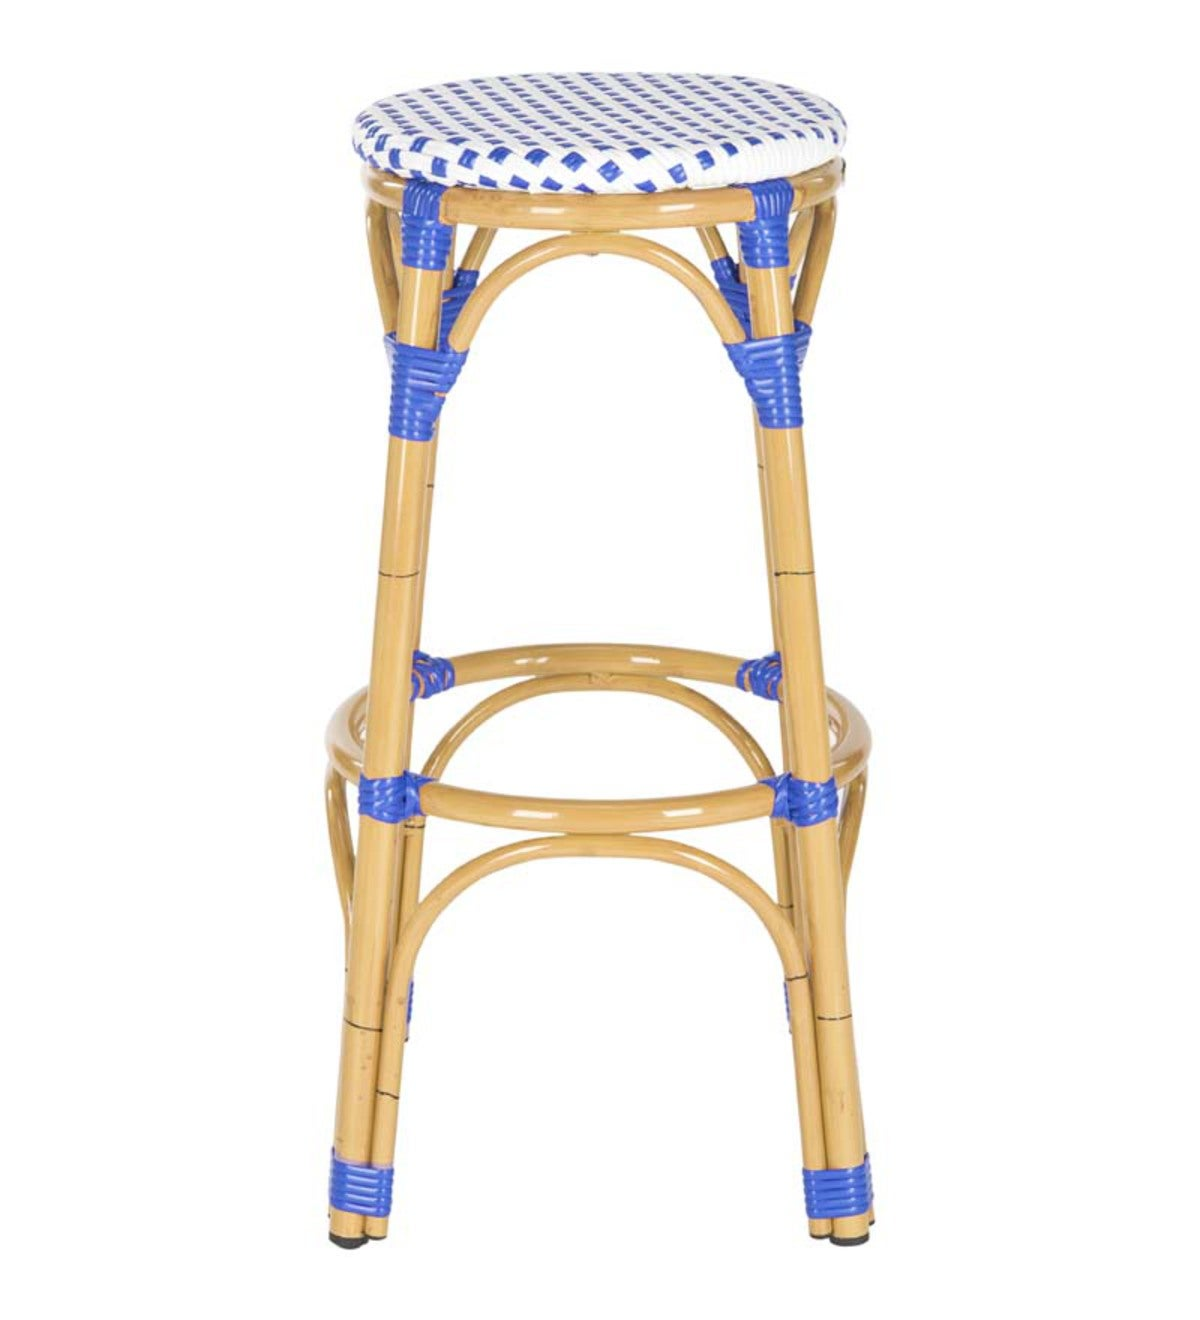 Two-Toned Bamboo Indoor/Outdoor Bar Stool - Blue